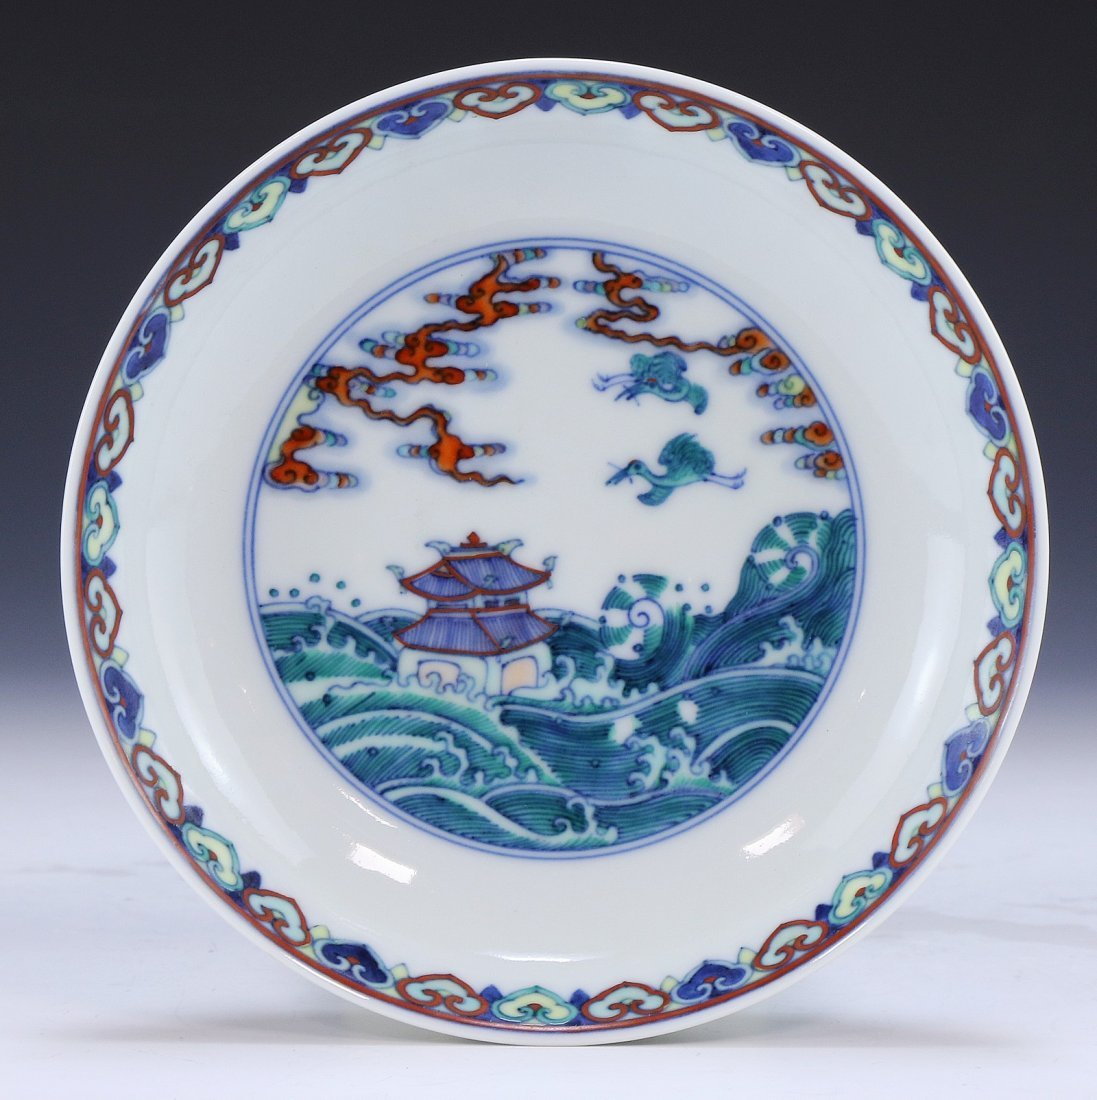 A CHINESE ANTIQUE DOUCAI PORCELAIN SAUCER